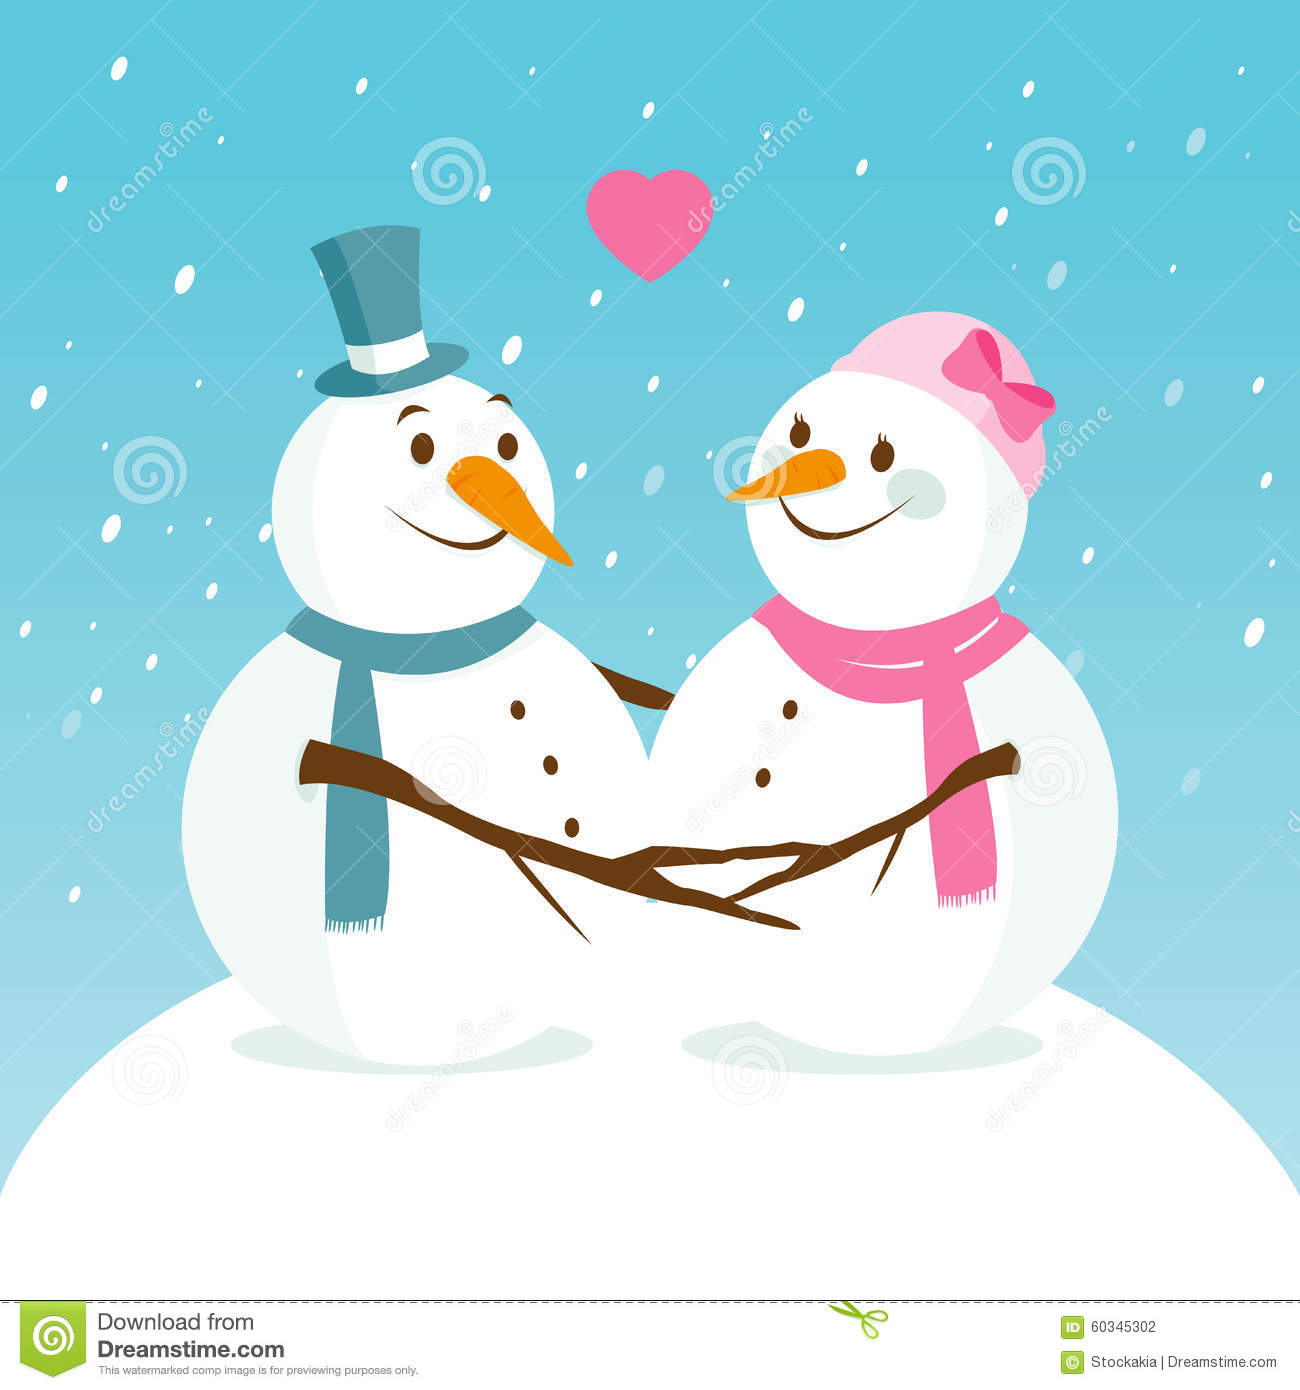 Snowy Landscape With Cute Snowmen In Love Stock Vector